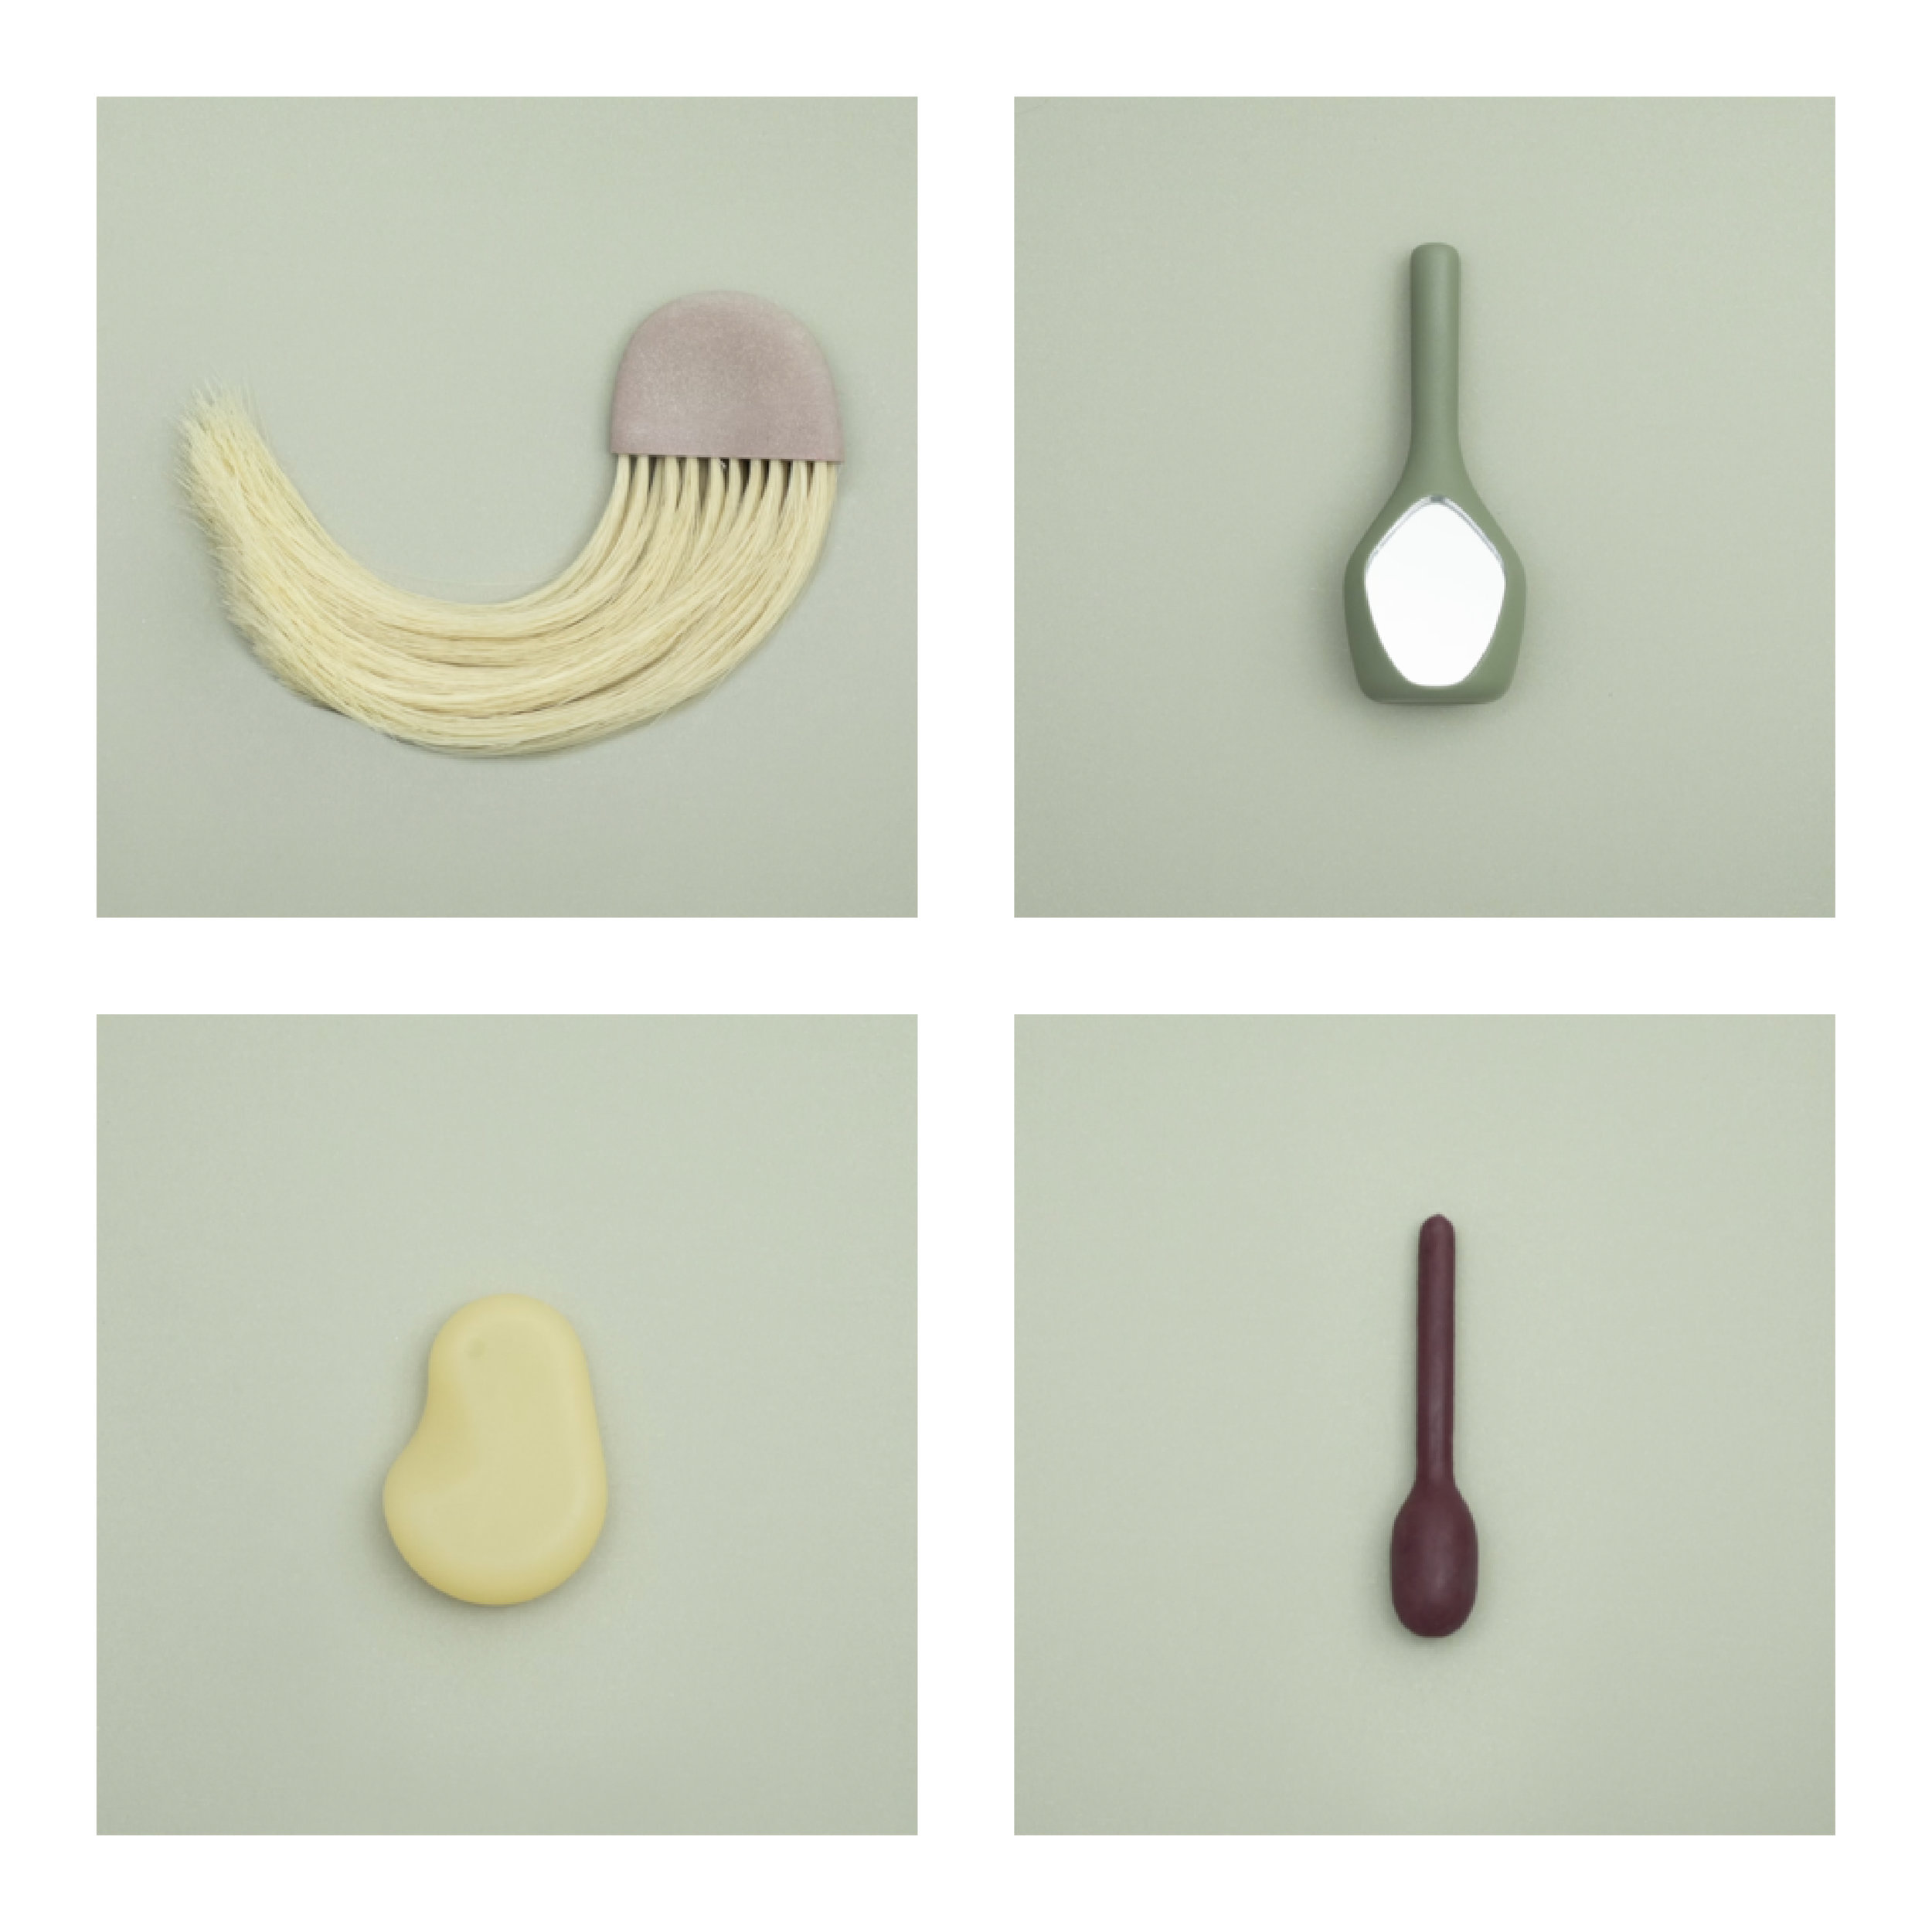 Sexual Healing Collection (clockwise from top left: Brush, Mirror, Stone, Pelvic Sensor)